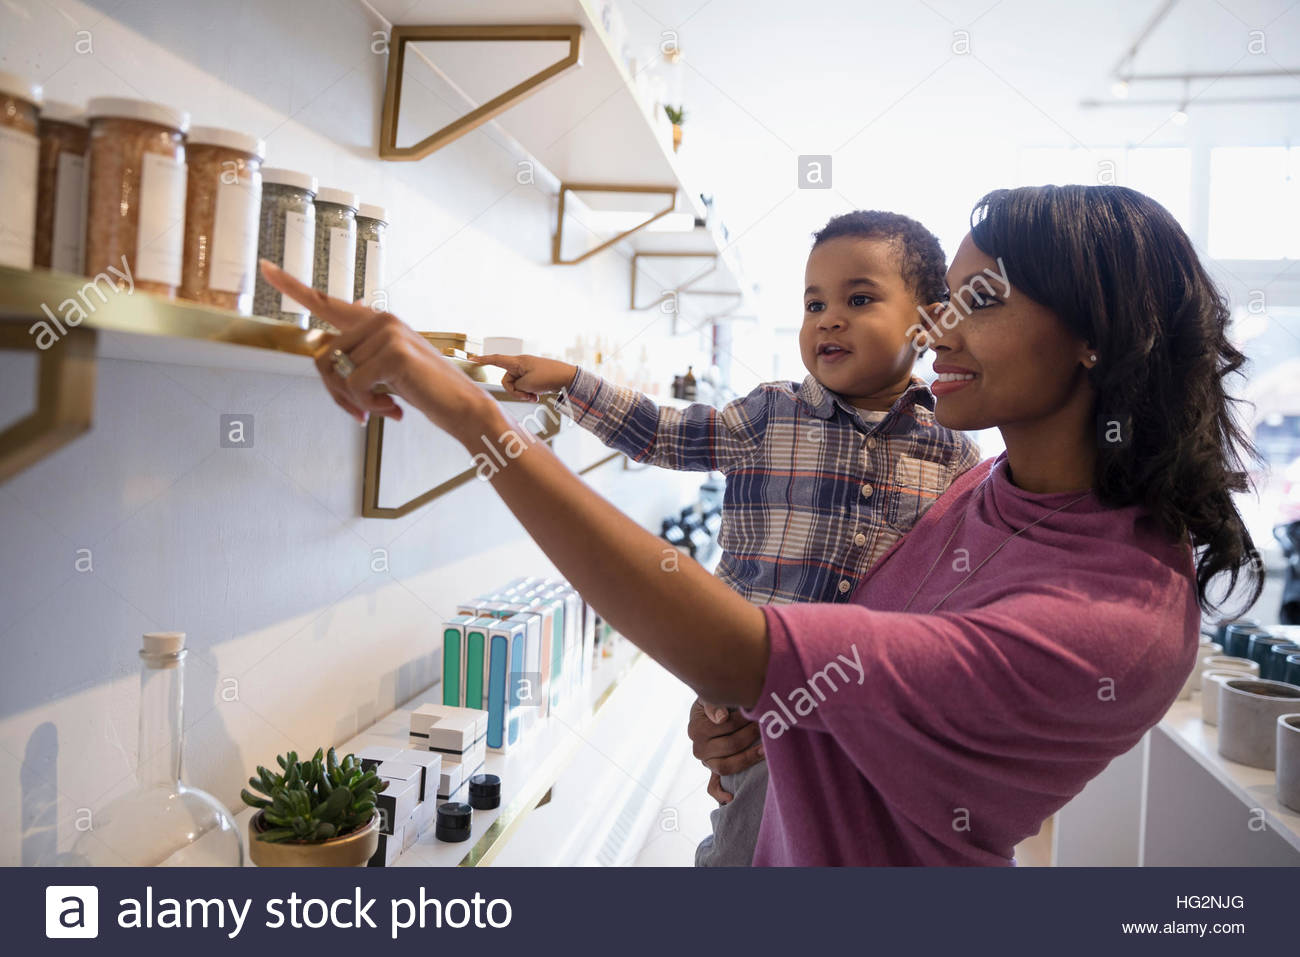 Mother and son browsing merchandise on shelf in shop Stock Photo